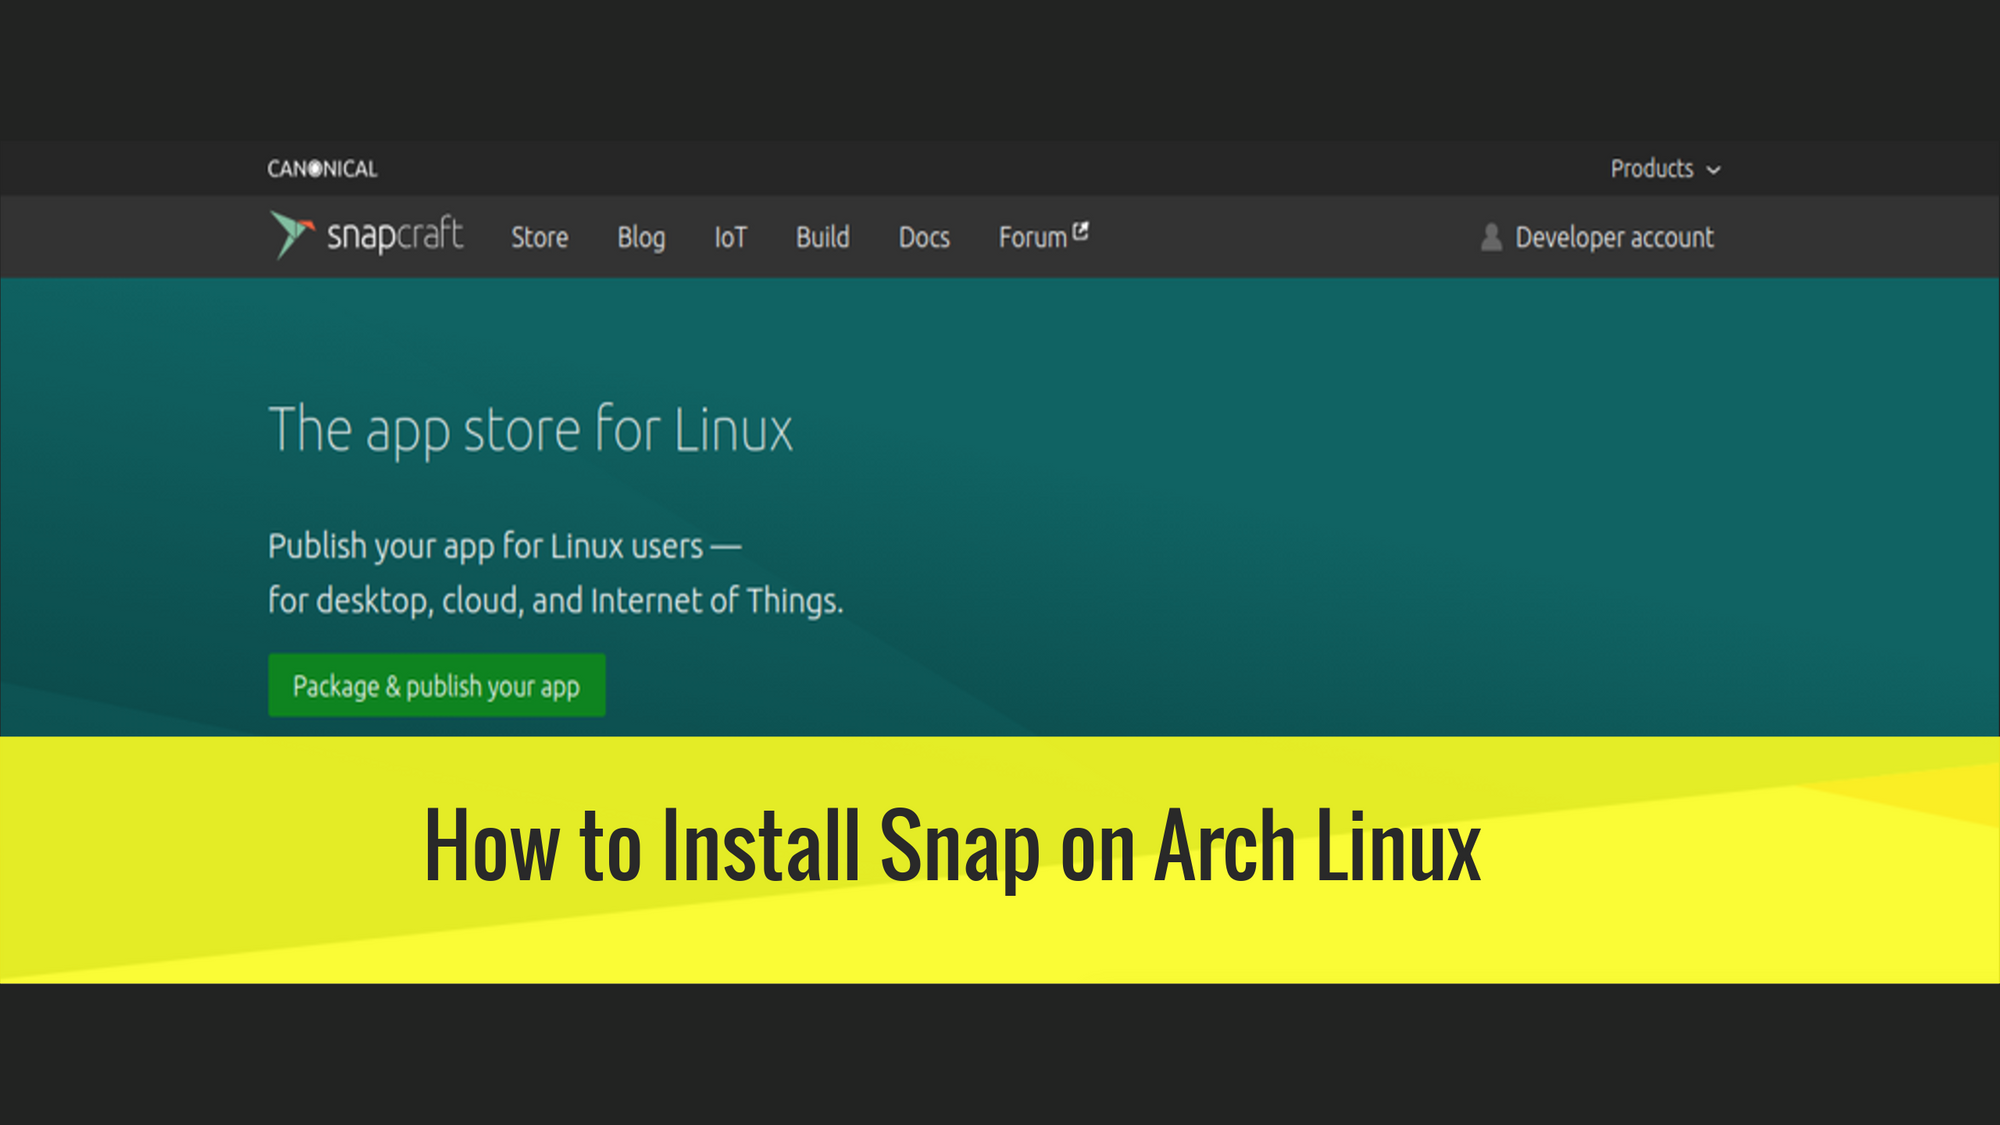 How to install Snap on Arch Linux